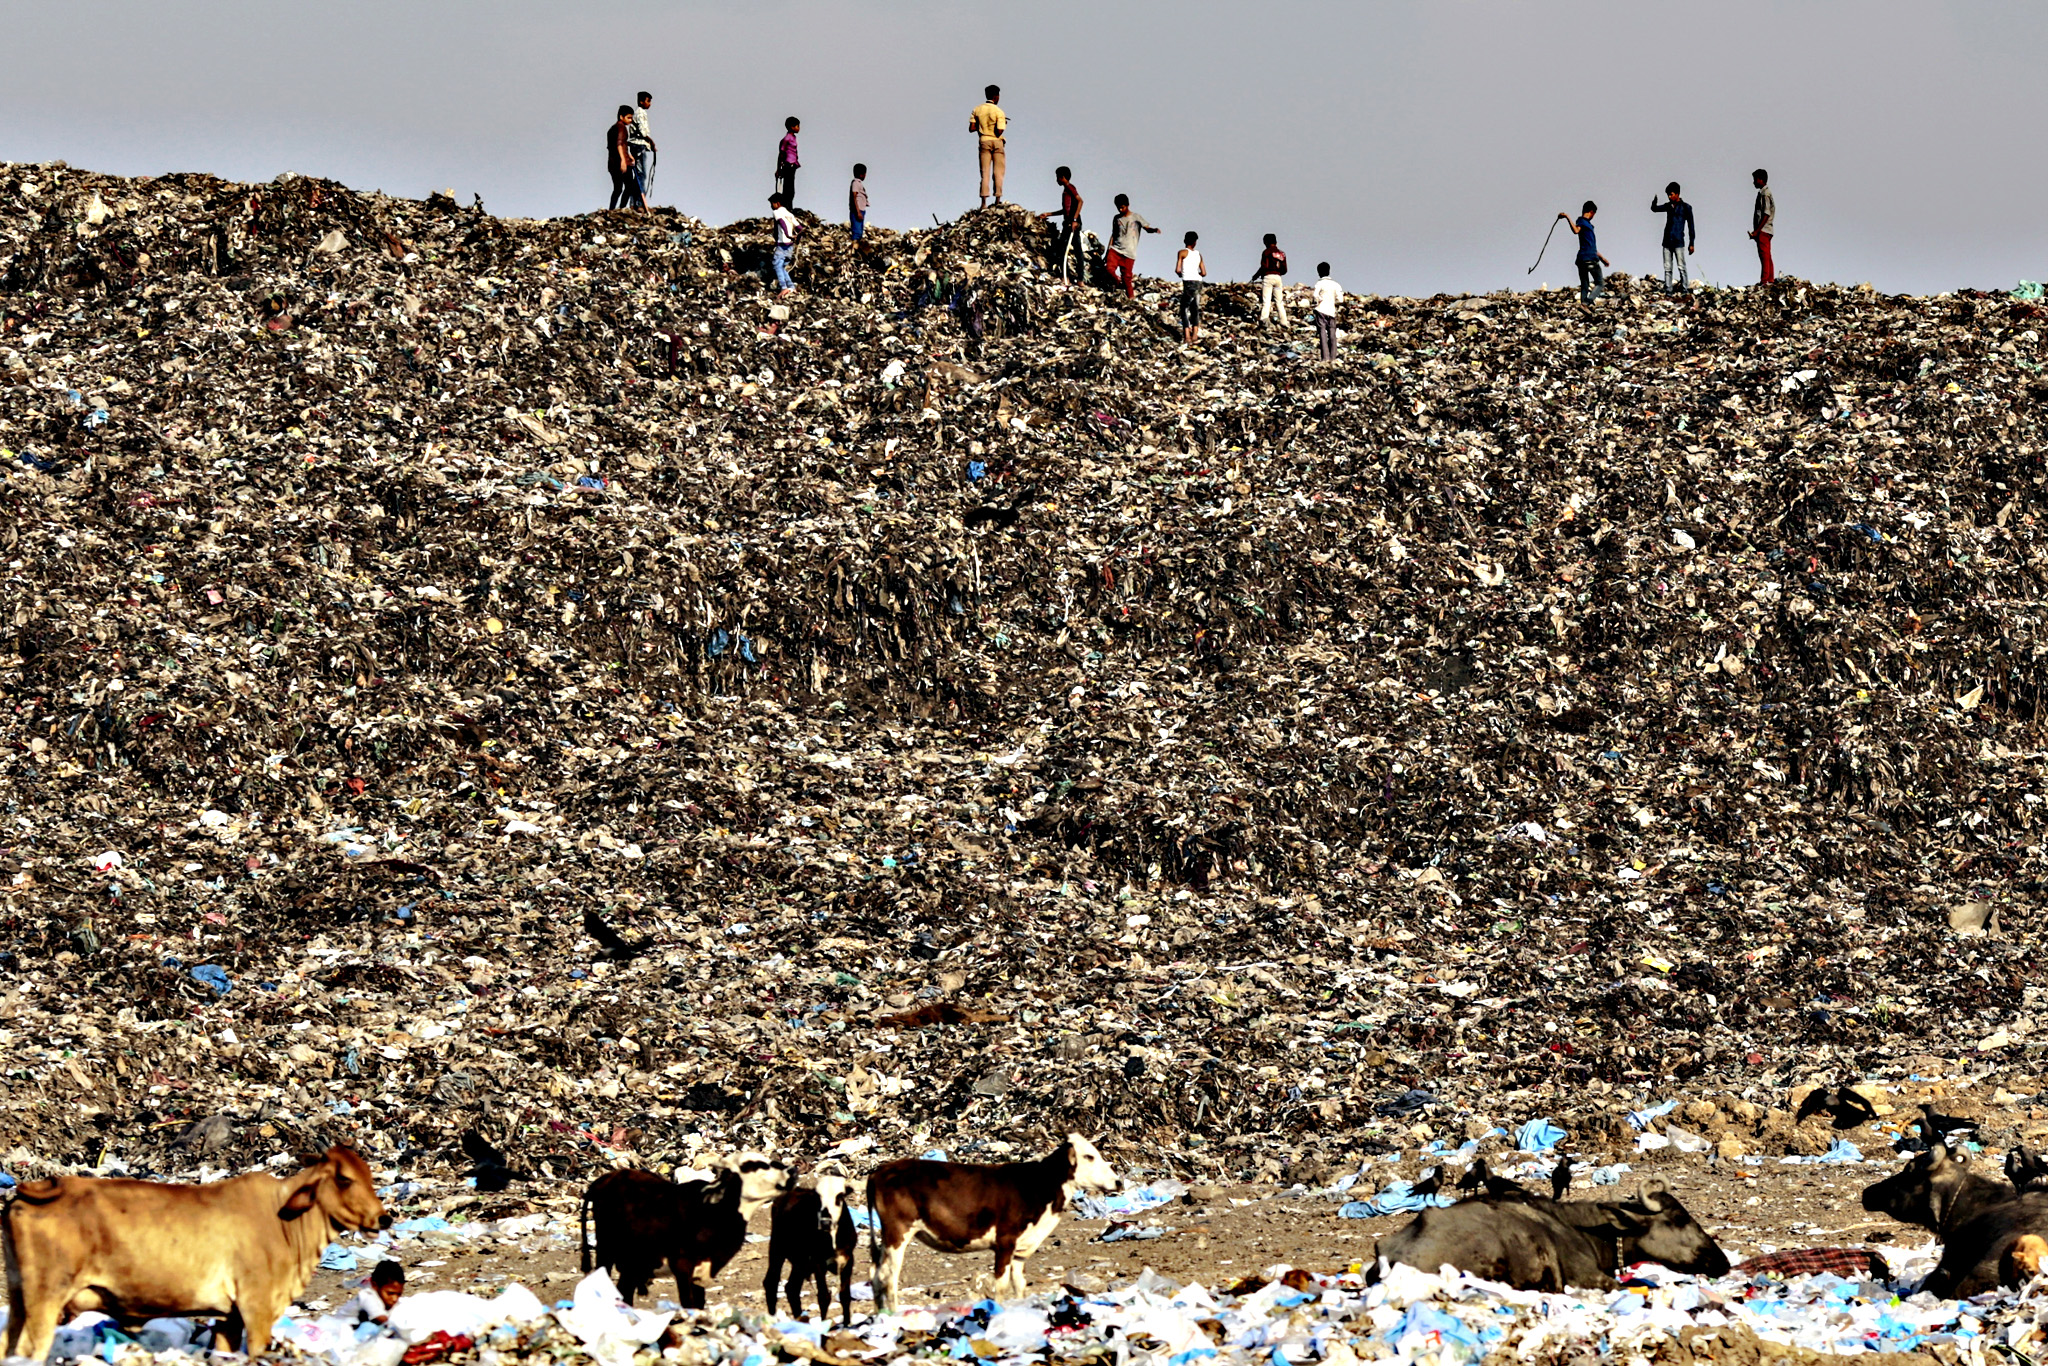 Boys play as cows graze through garbage at the Deonar landfill site in Mumbai, India. Mumbai is running out of space for its waste, and Deonar, Asia's oldest and largest dumpsite, is bursting. Each day, more than 500 trucks line up along a two-lane dirt road in an eastern suburb, waiting to add to a mountain of refuse tall enough to submerge the White House twice over